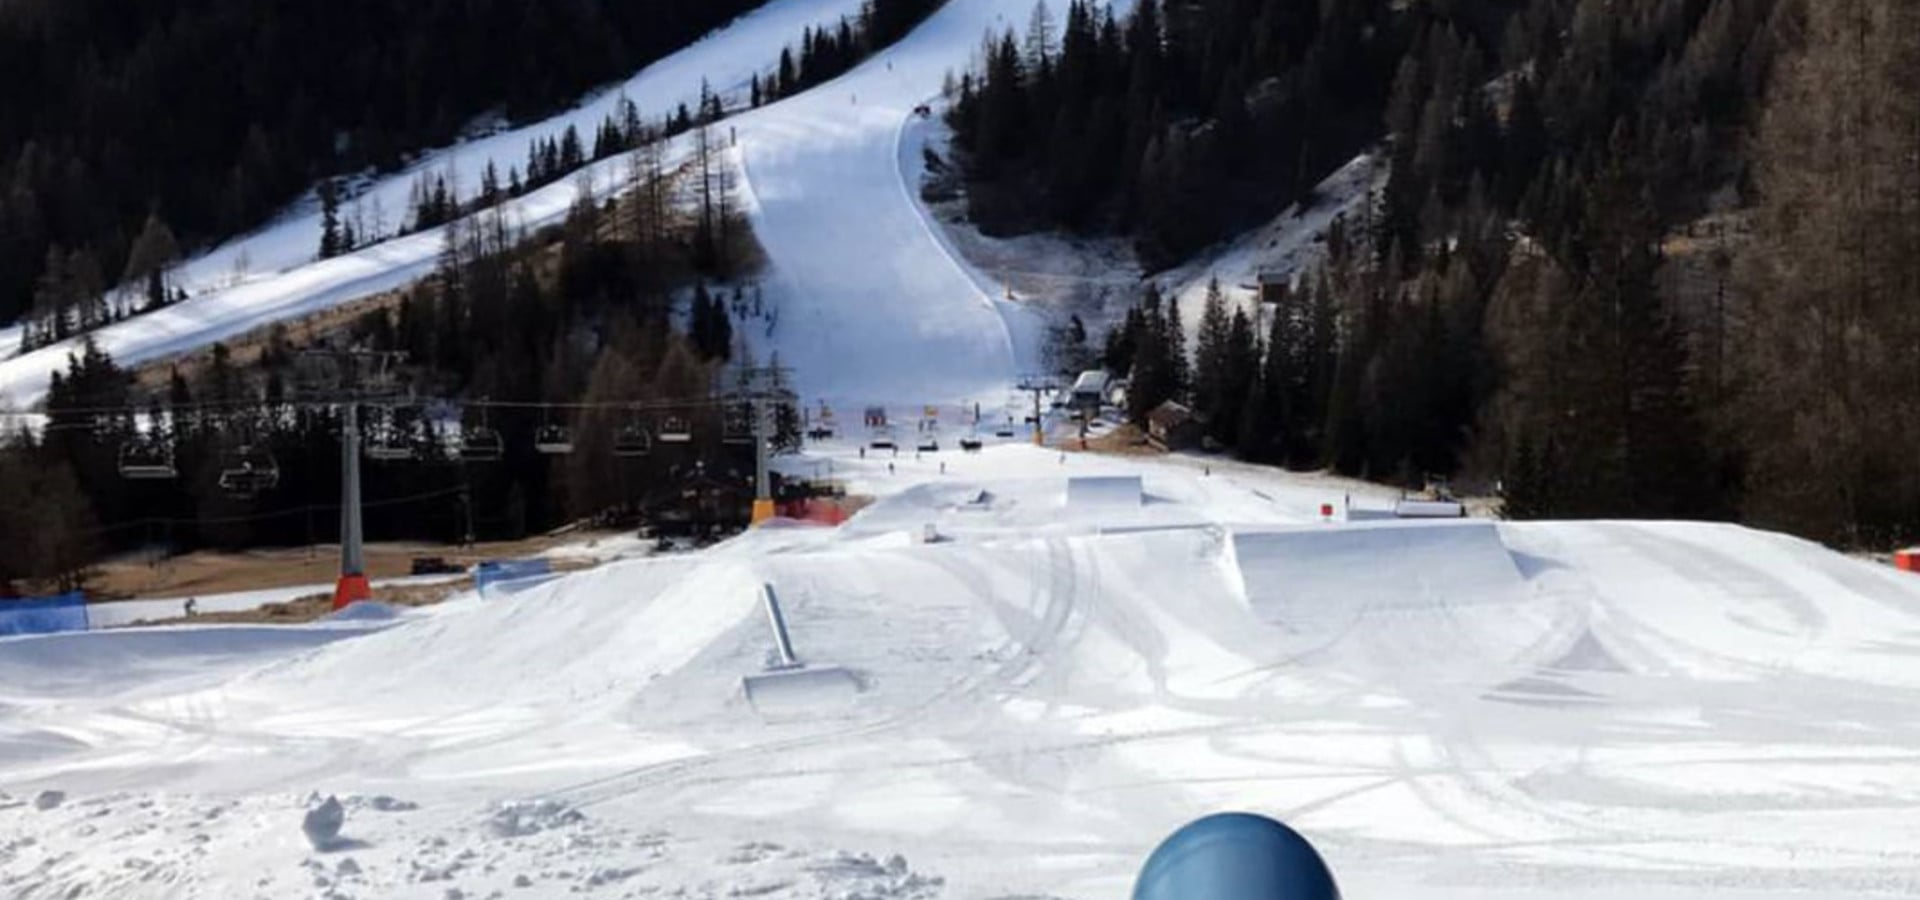 SNOWPARK: The Arabba SuperPark is now open